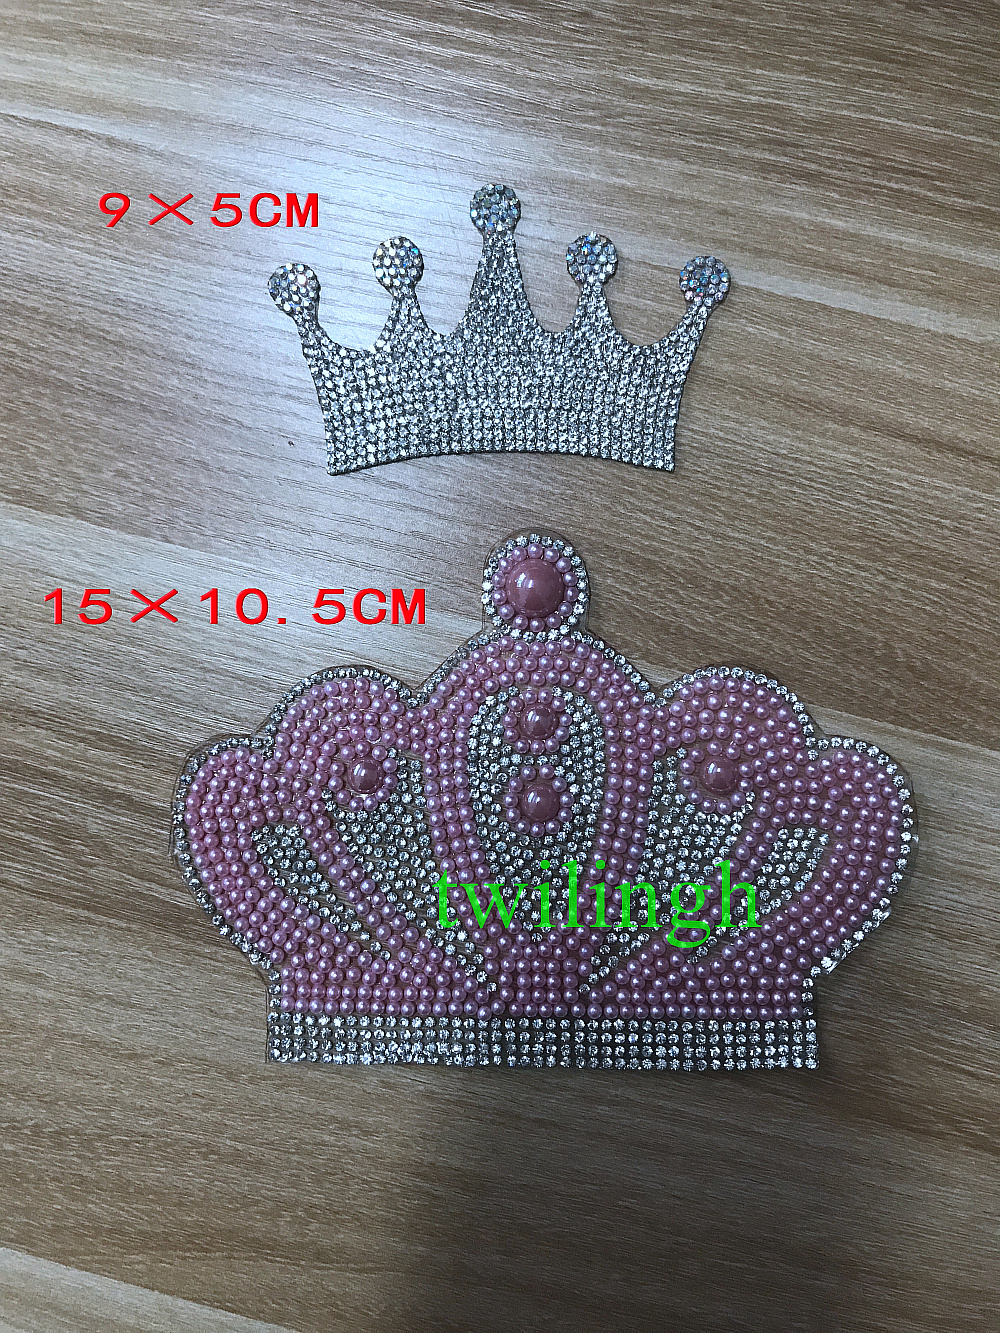 1 Piece Crown Patch DIY Iron On Patches Hot Fix Rhinestone Applique Ironing  Clothing Supplies Decoration f777c346651f